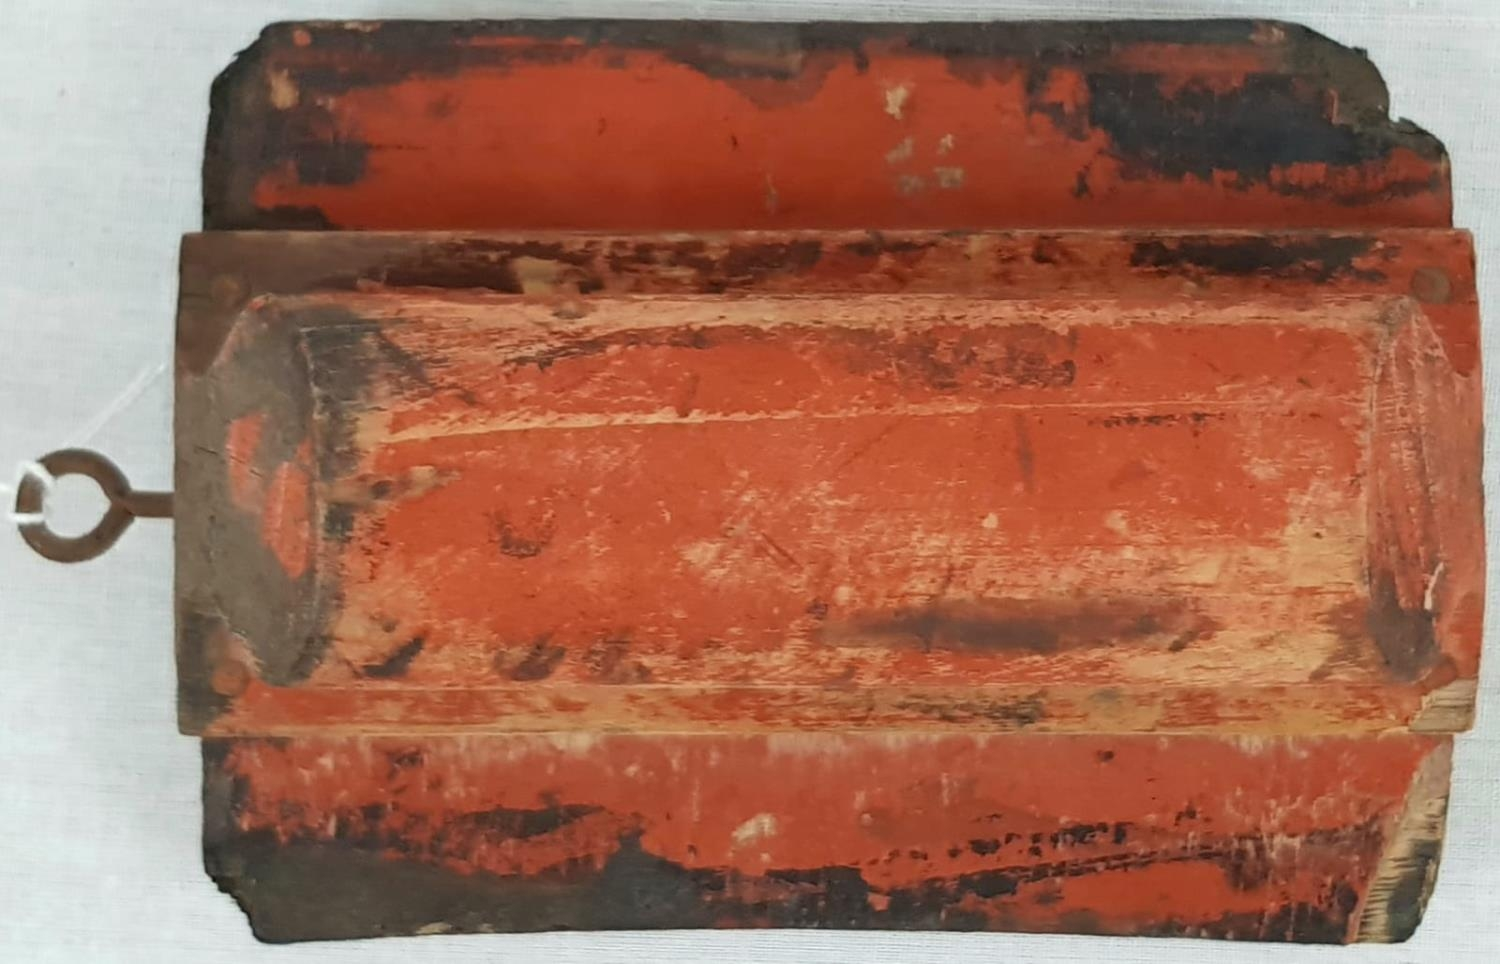 """AN ANTIQUE FREIGHT BOX STAMP WITH """"T.F NEW YORK"""" ON IT. 10 X 14cms - Image 3 of 4"""